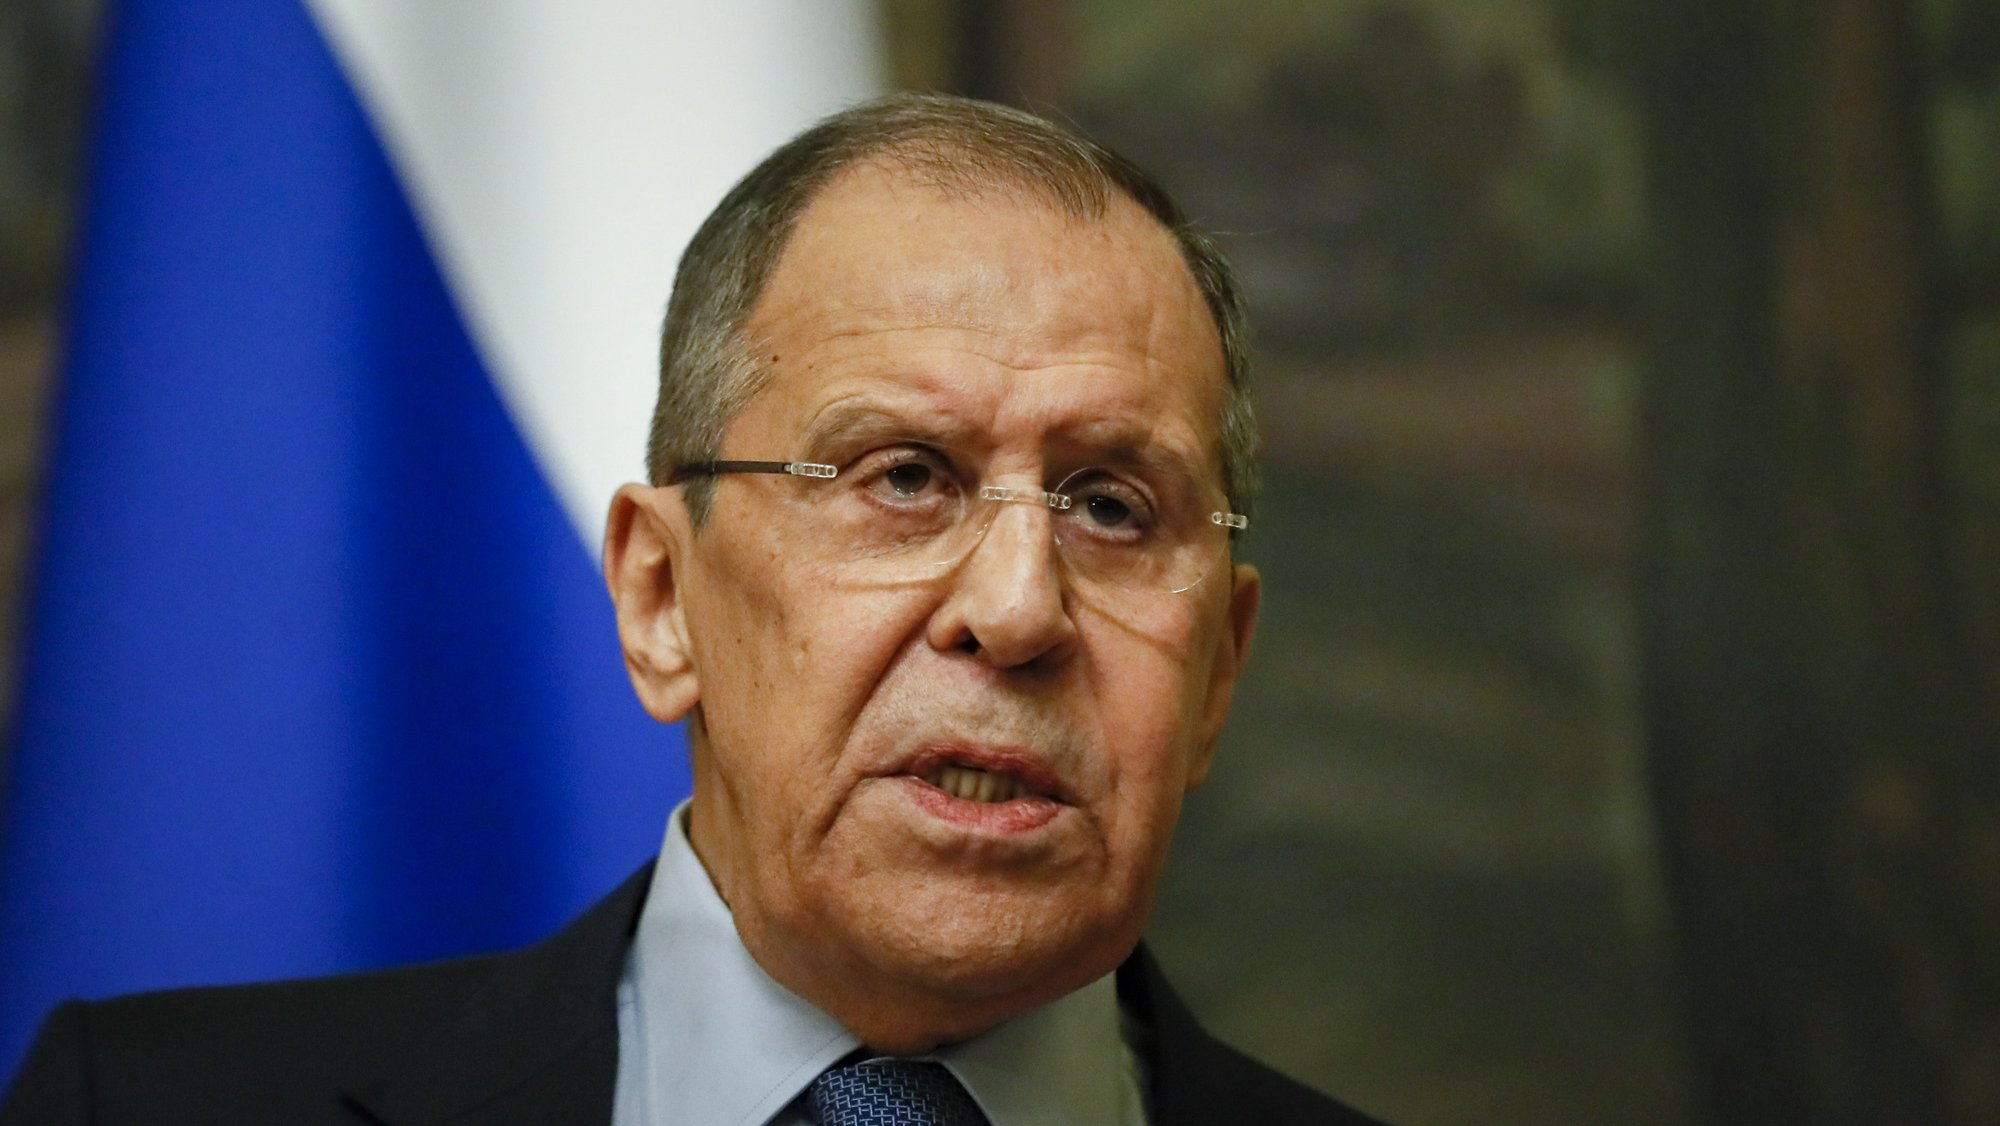 epa09139948 Russian Foreign Minister Sergei Lavrov attends a press conference after his meeting with Serbian Foreign Minister Nikola Selakovic  in Moscow, Russia, 16 April 2021. Serbian Foreign Minister Nikola Selakovic is on a working visit to Moscow.  EPA/YURI KOCHETKOV